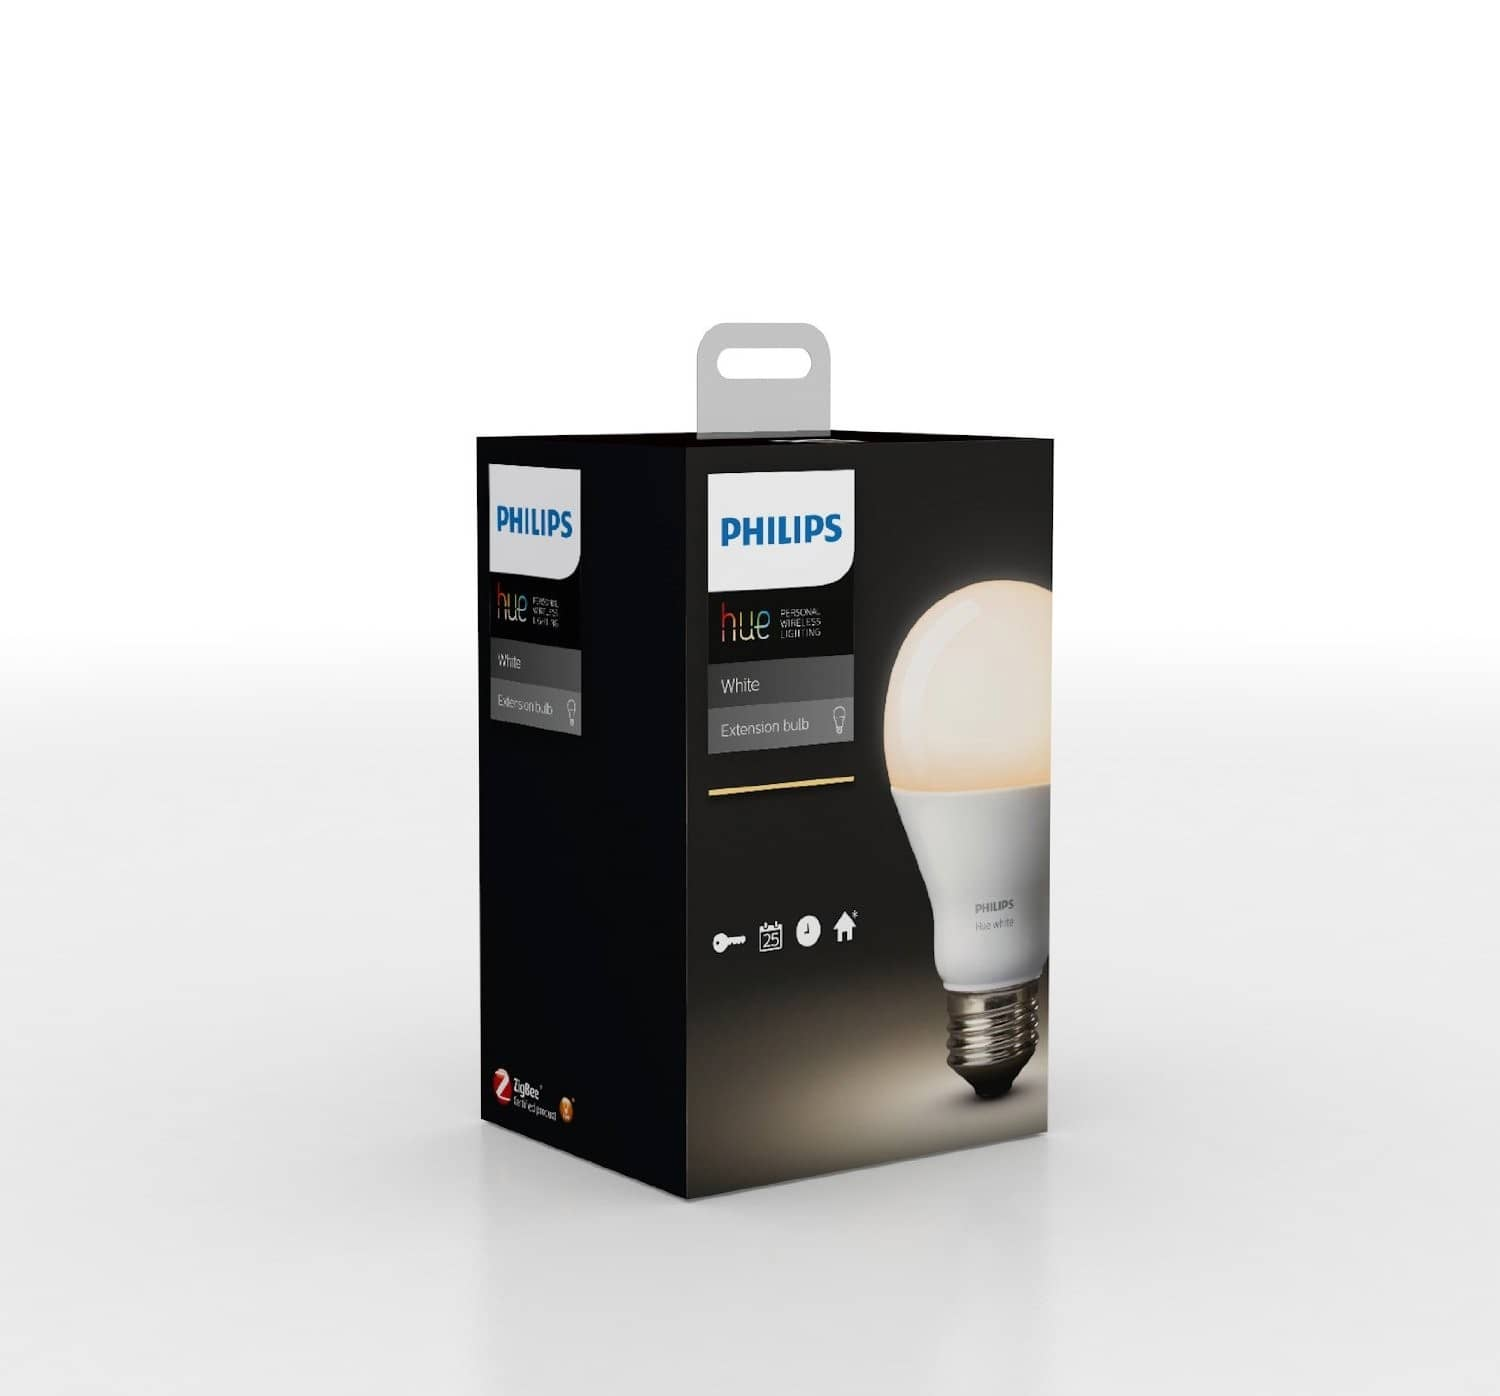 Bec Inteligent Philips Hue White 9.5w A60 E27